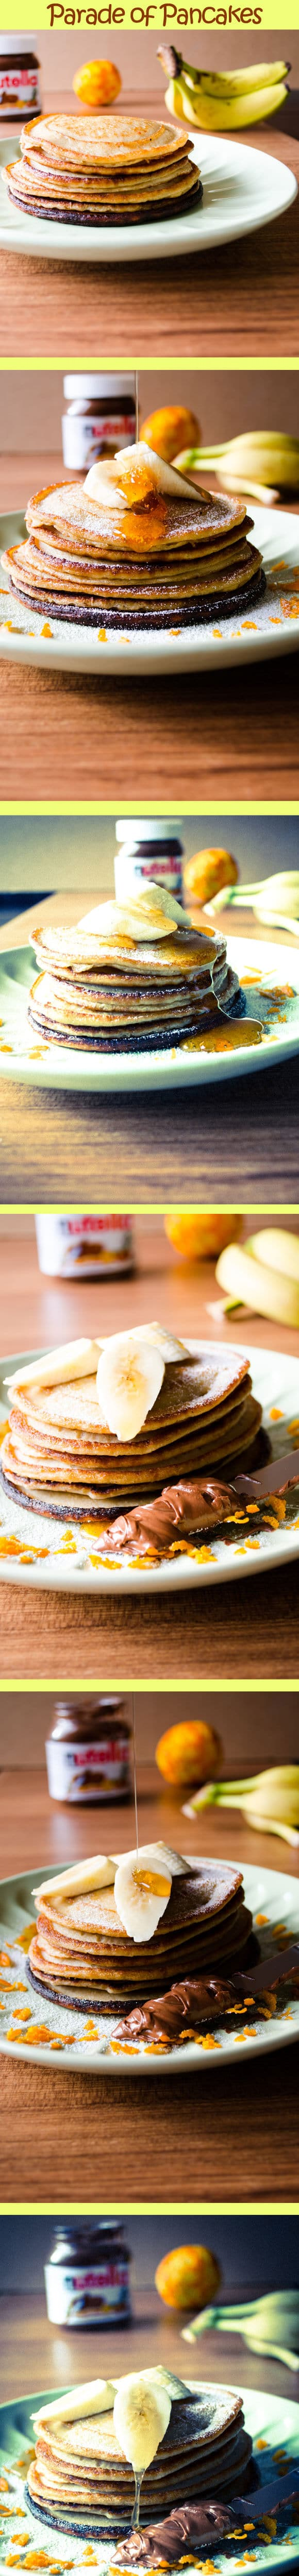 banana pancakes | giverecipe.com